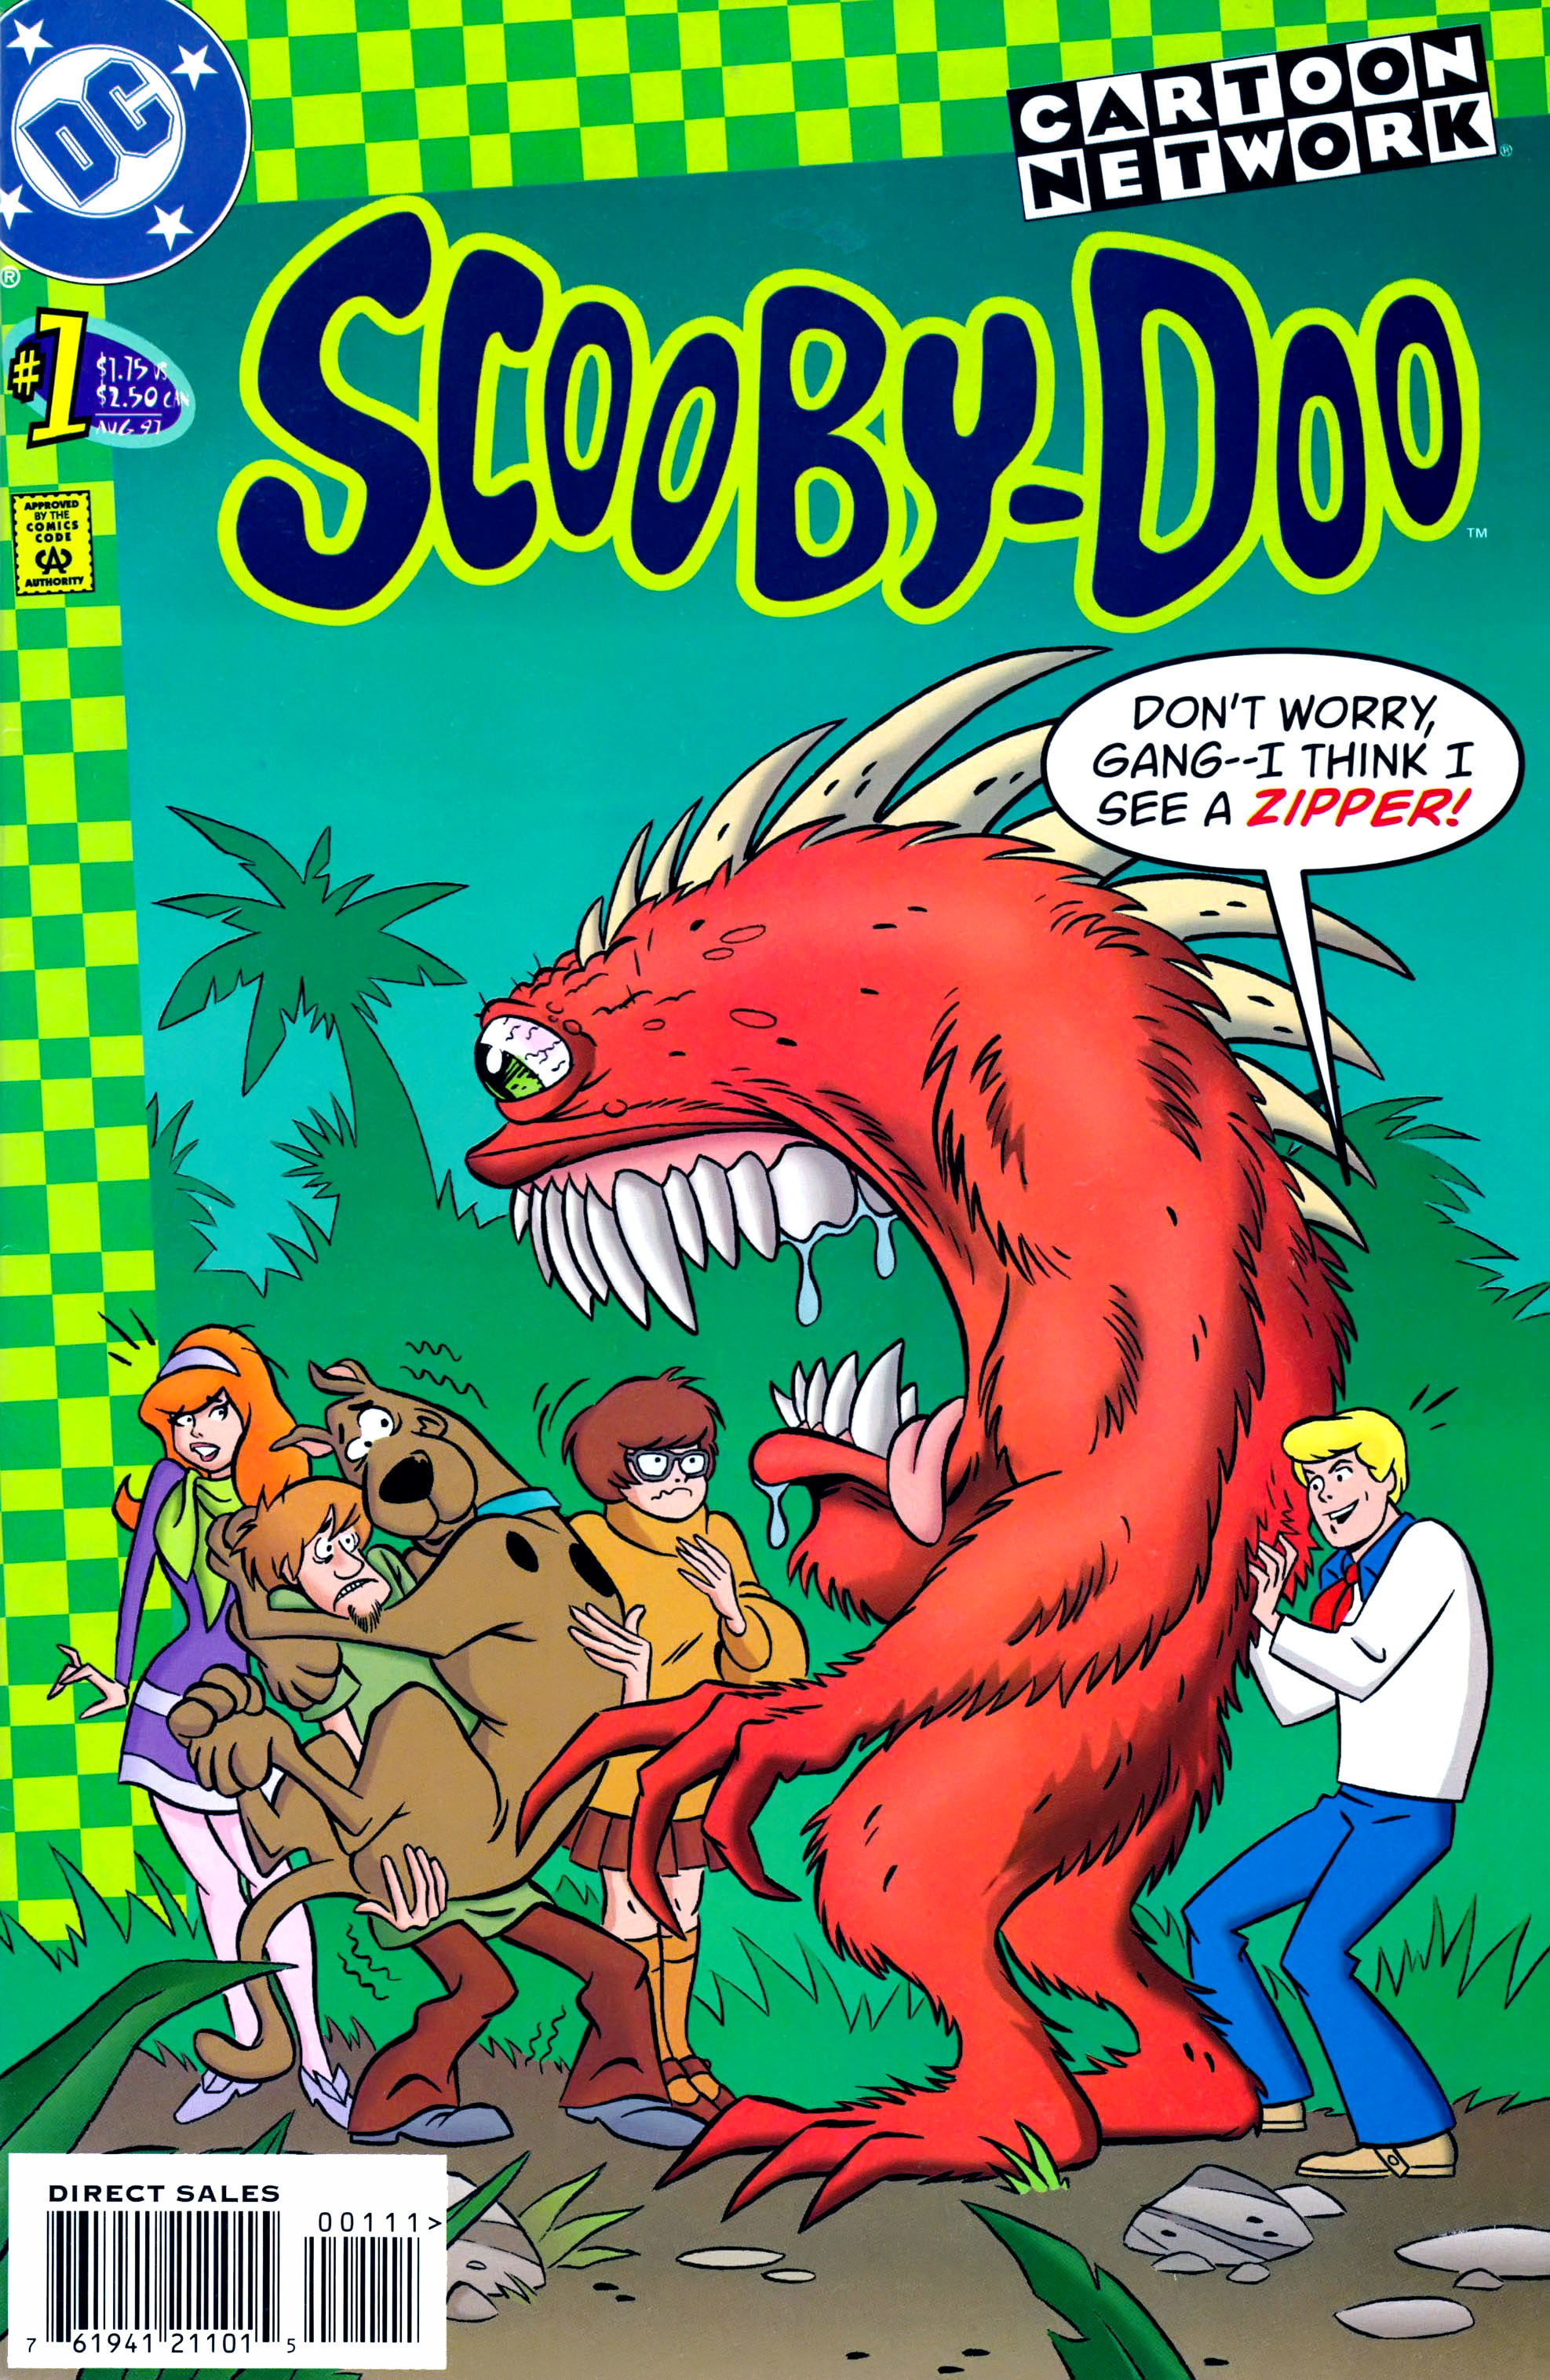 Read online Scooby-Doo (1997) comic -  Issue #1 - 1